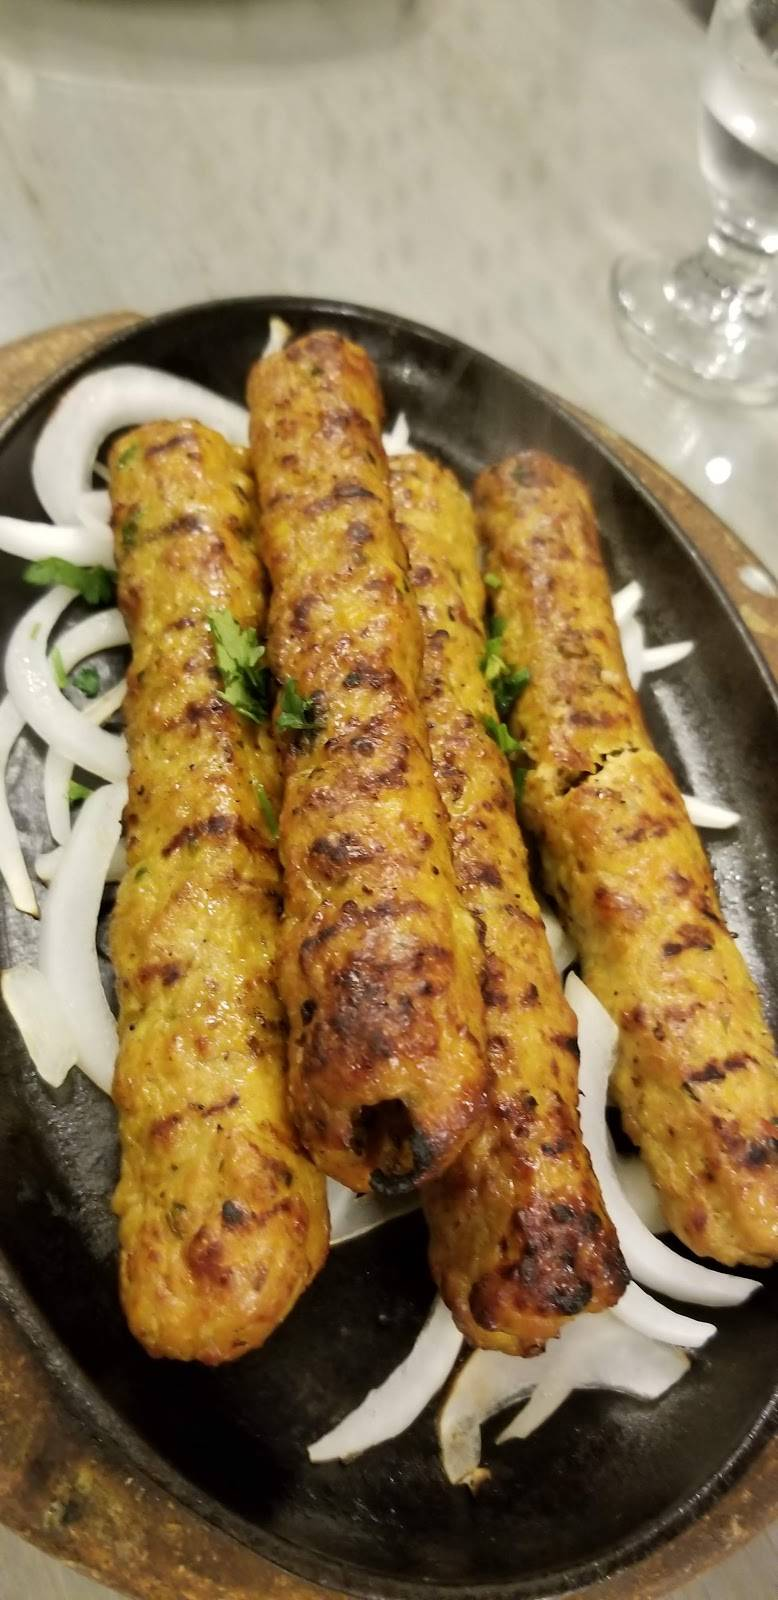 Nirala Sweets and Restaurant | restaurant | 2818 Markham Rd, Scarborough, ON M1X 1E6, Canada | 4162917232 OR +1 416-291-7232